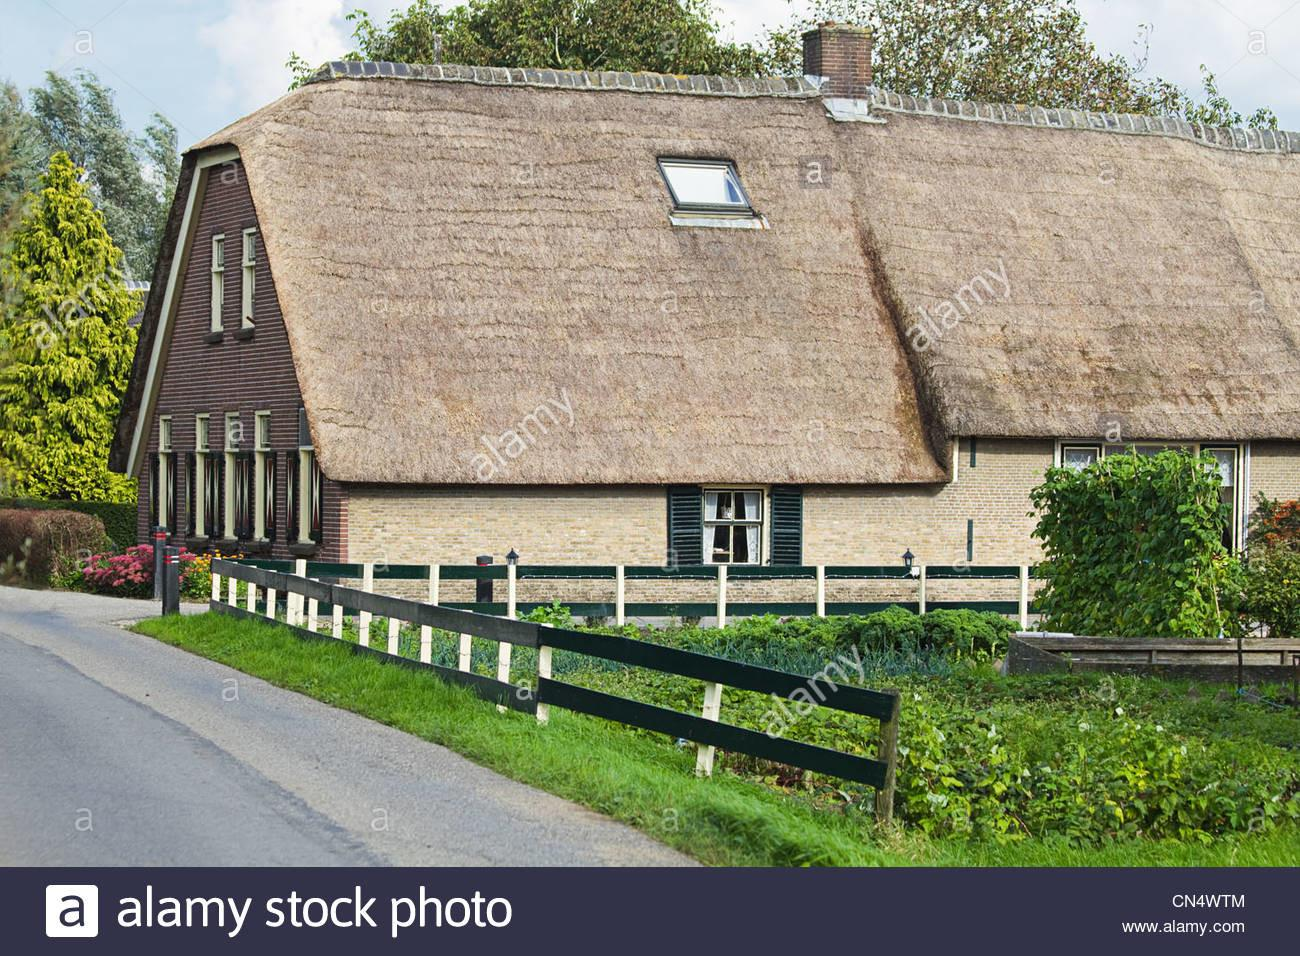 Old Dutch Farm Country Thatched Roof